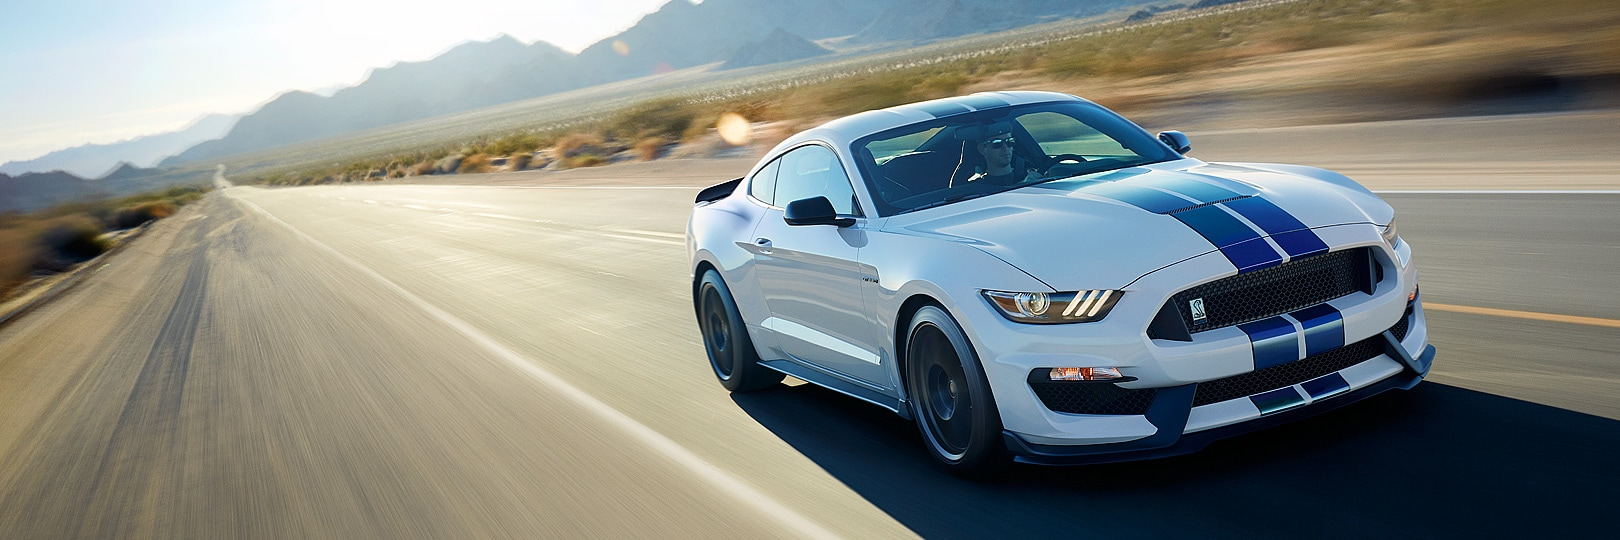 All Types mustang pictures : New 2017 Ford Mustang | Test Drive a Mustang in El Paso Today ...